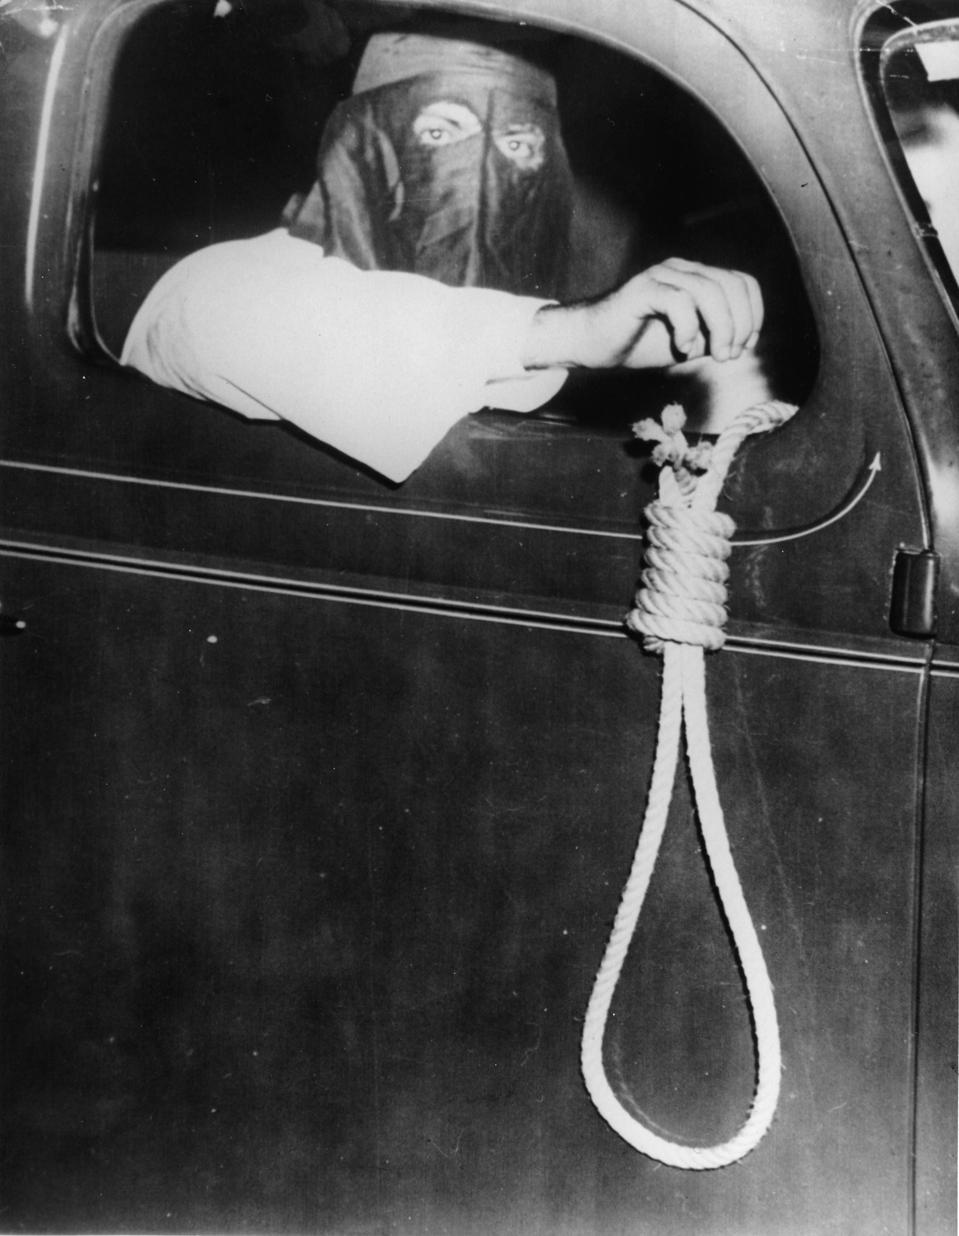 Member of the Ku Klux Klan with a noose, 75 cars of the Ku Klux Klan were driving through Miami, Florida to hold off black people form the election, Photograph, May 11th 1939